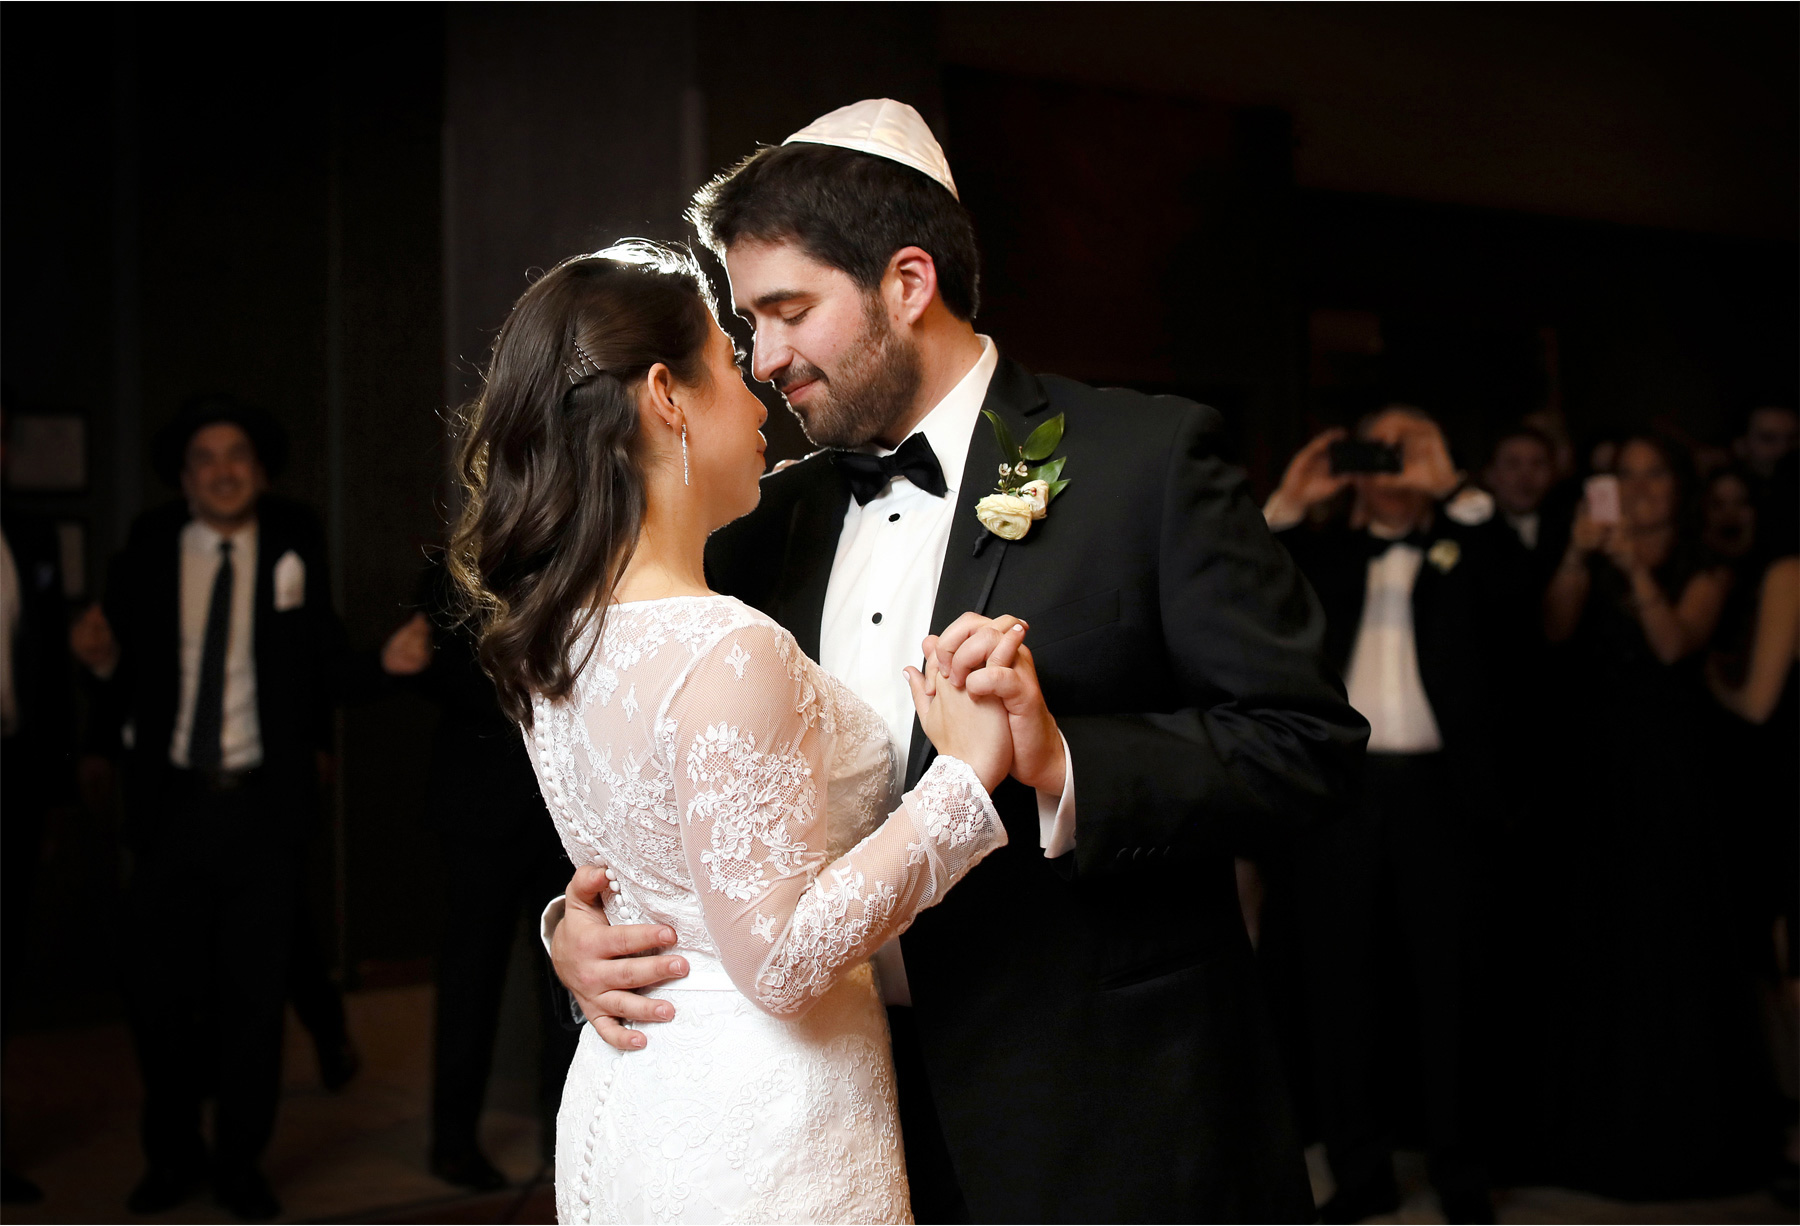 14-Minneapolis-Minnesota-Wedding-Photographer-by-Andrew-Vick-Photography-Winter-Hyatt-Regency-Hotel-Reception-Bride-Groom-Dance-Yarmulke-Amy-and-Jordan.jpg